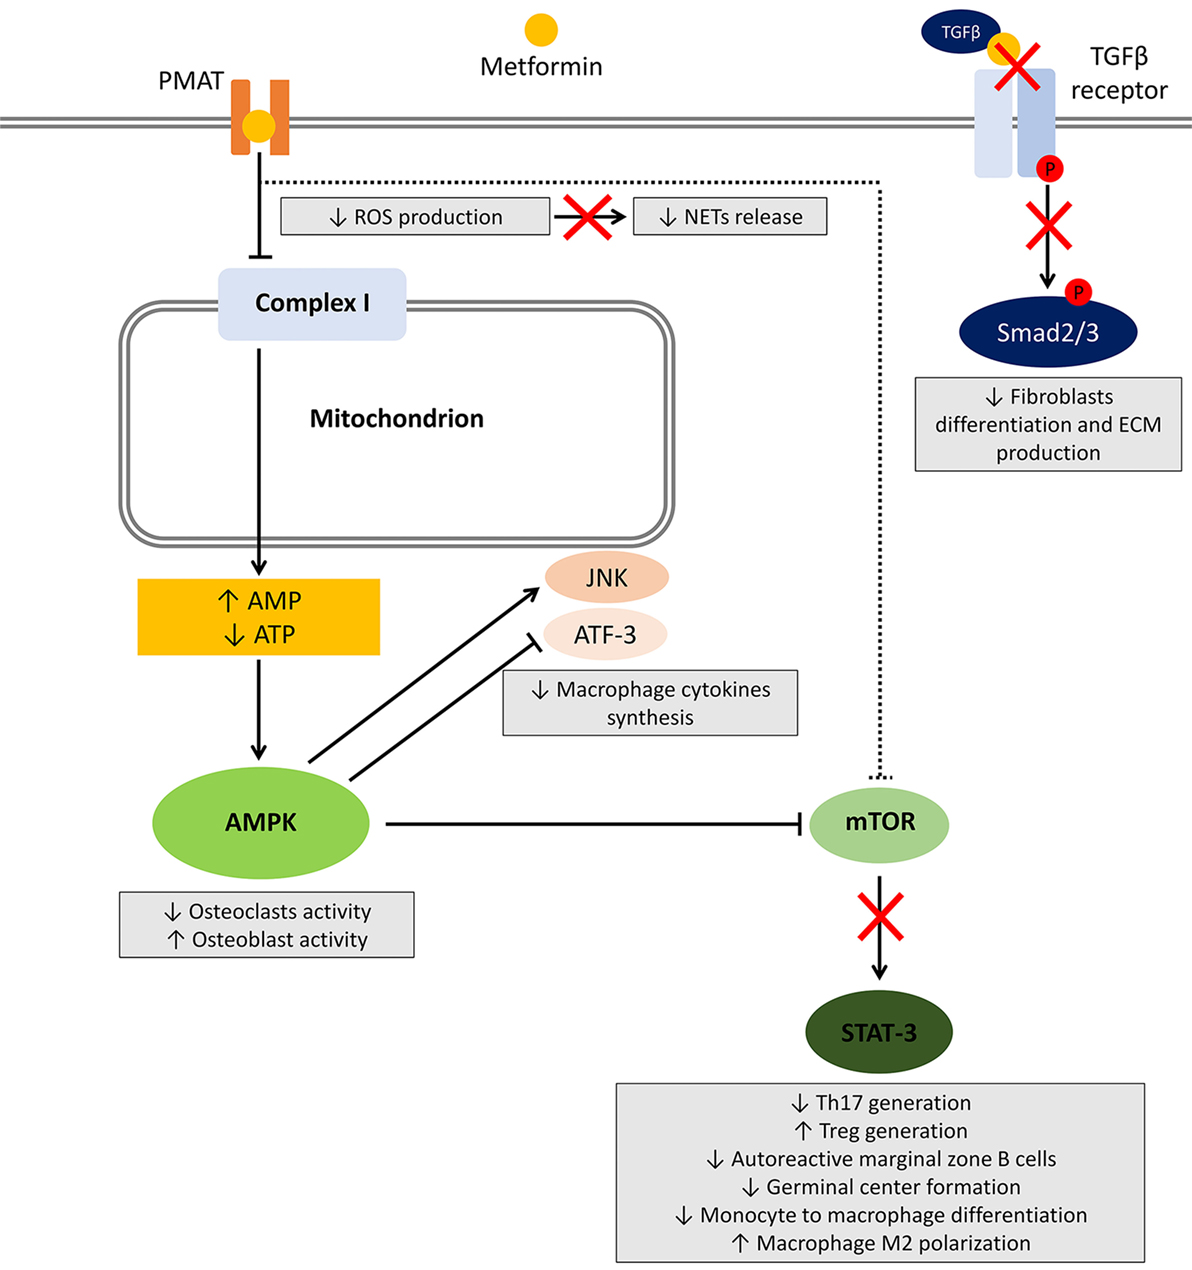 Frontiers Metformin And Autoimmunity A New Deal Of An Old Drug